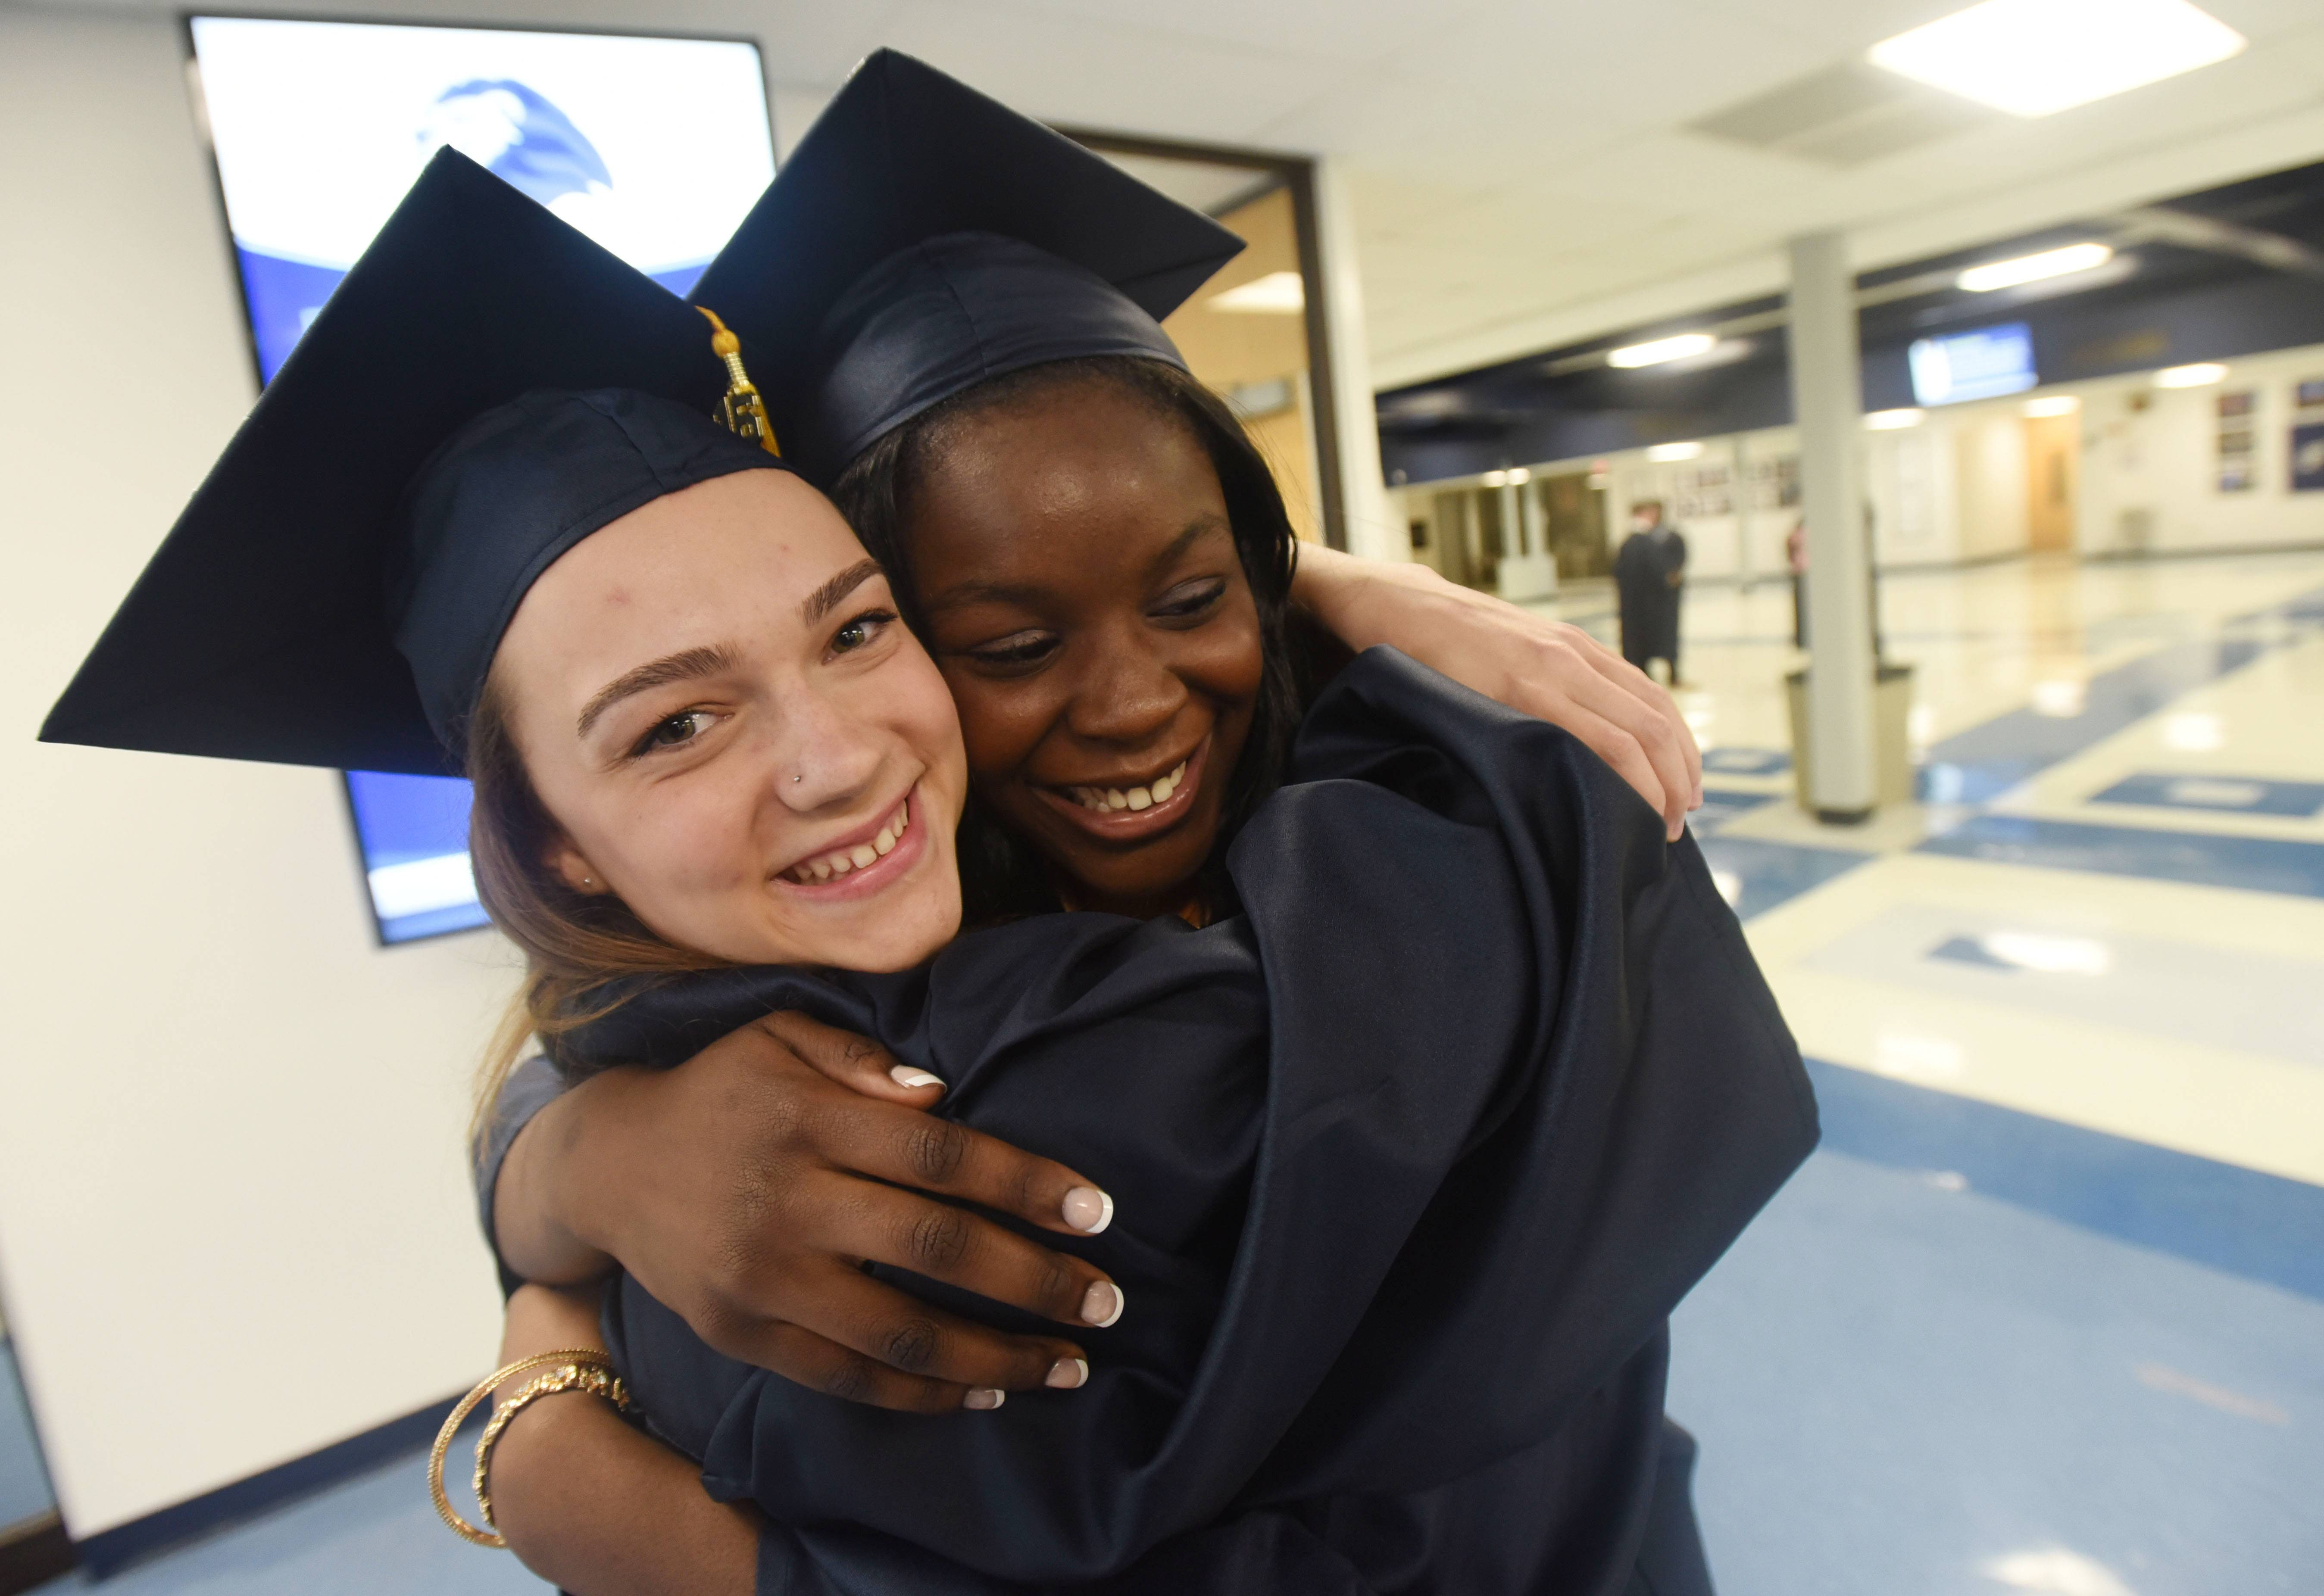 Victoria Pankow, 17, and Cindy Osagie, 17, embrace.